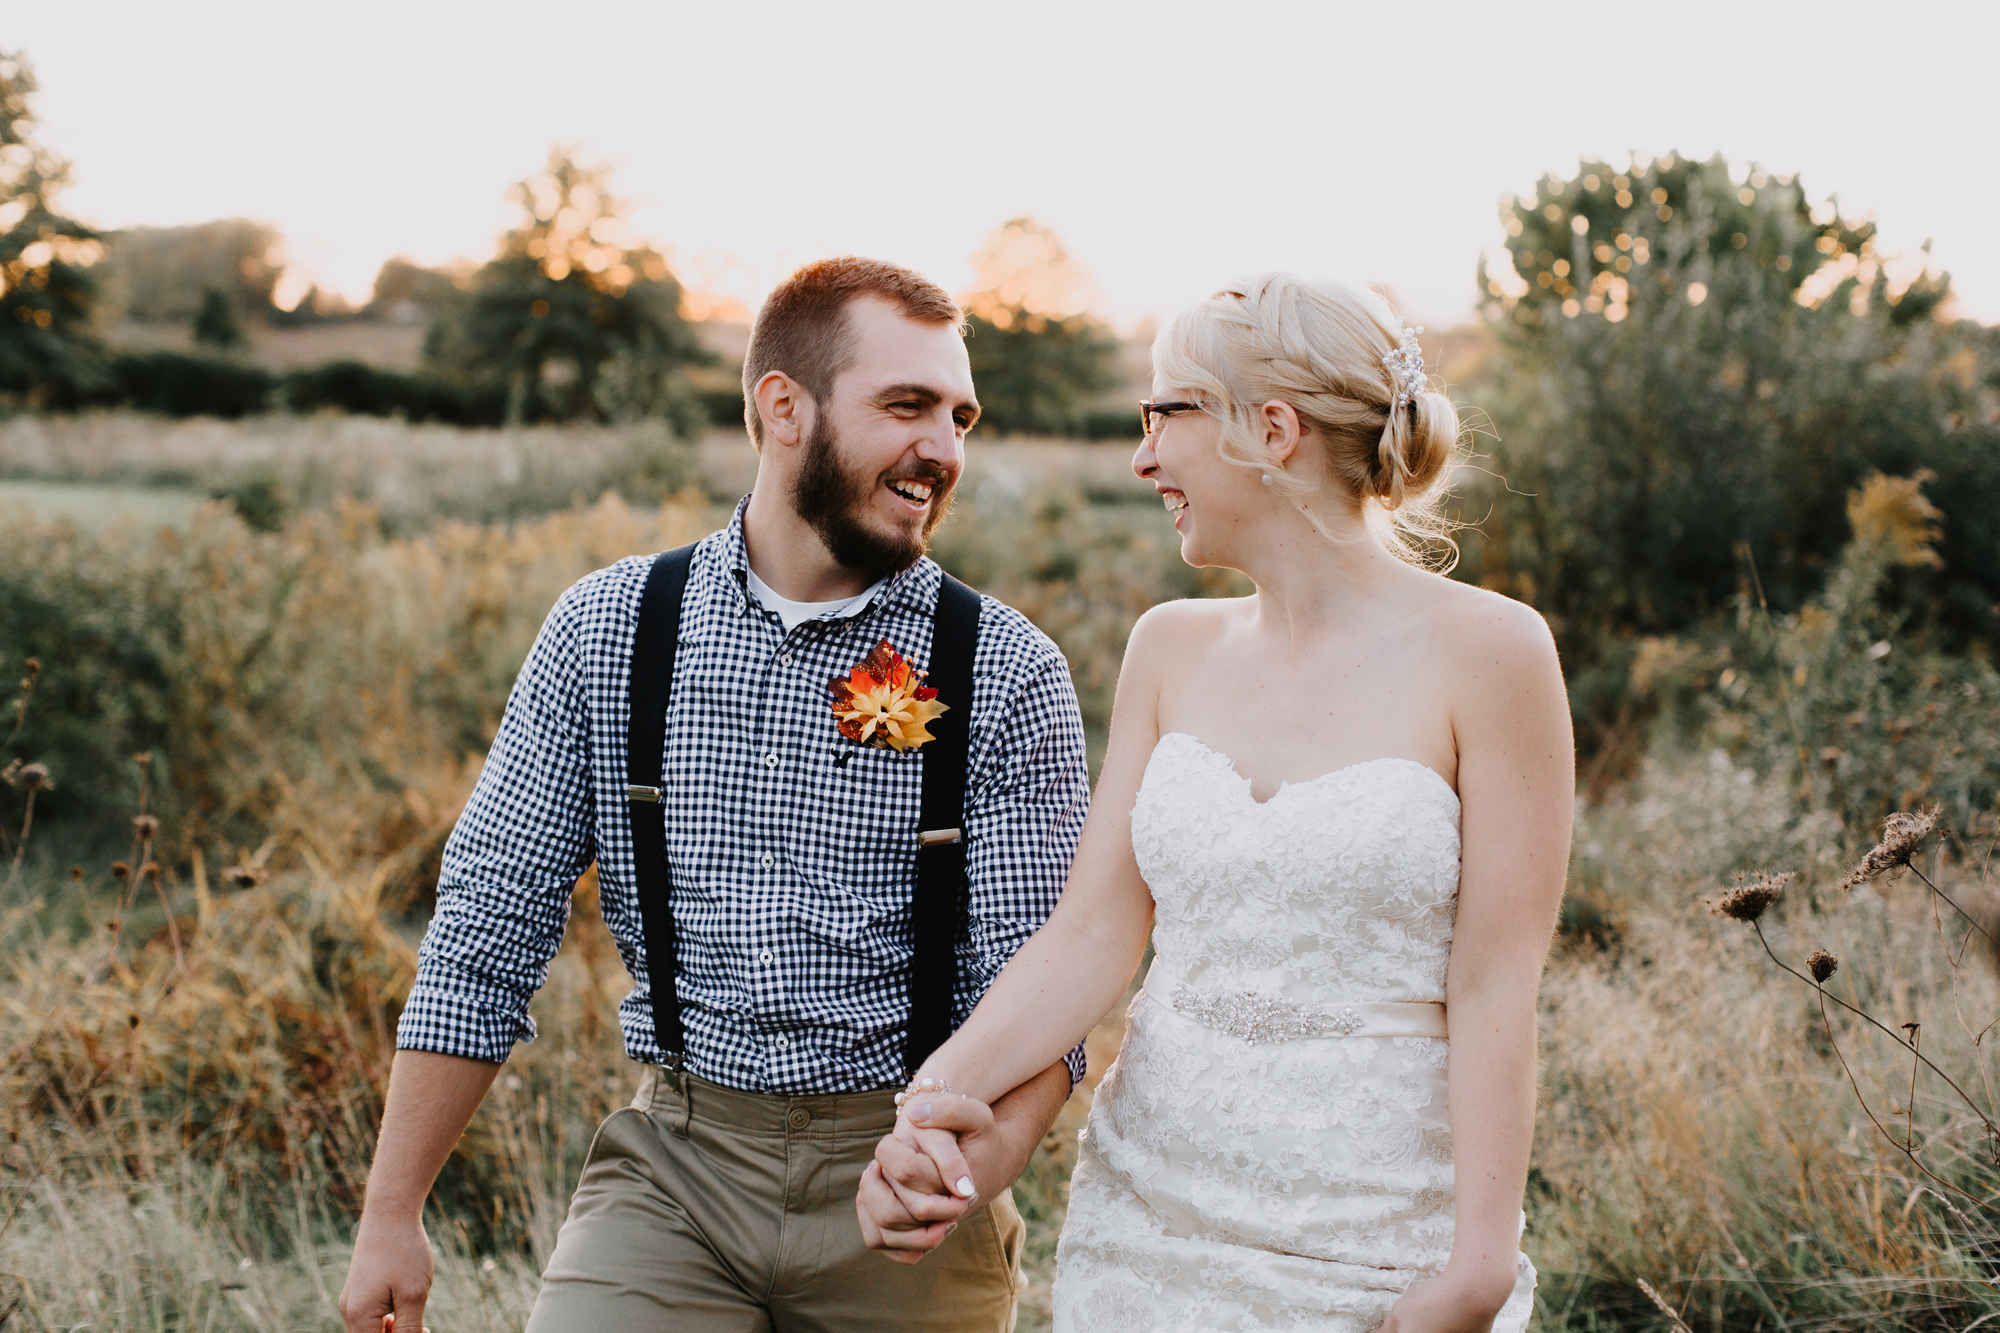 golden-hour-photography-on-your-wedding-day